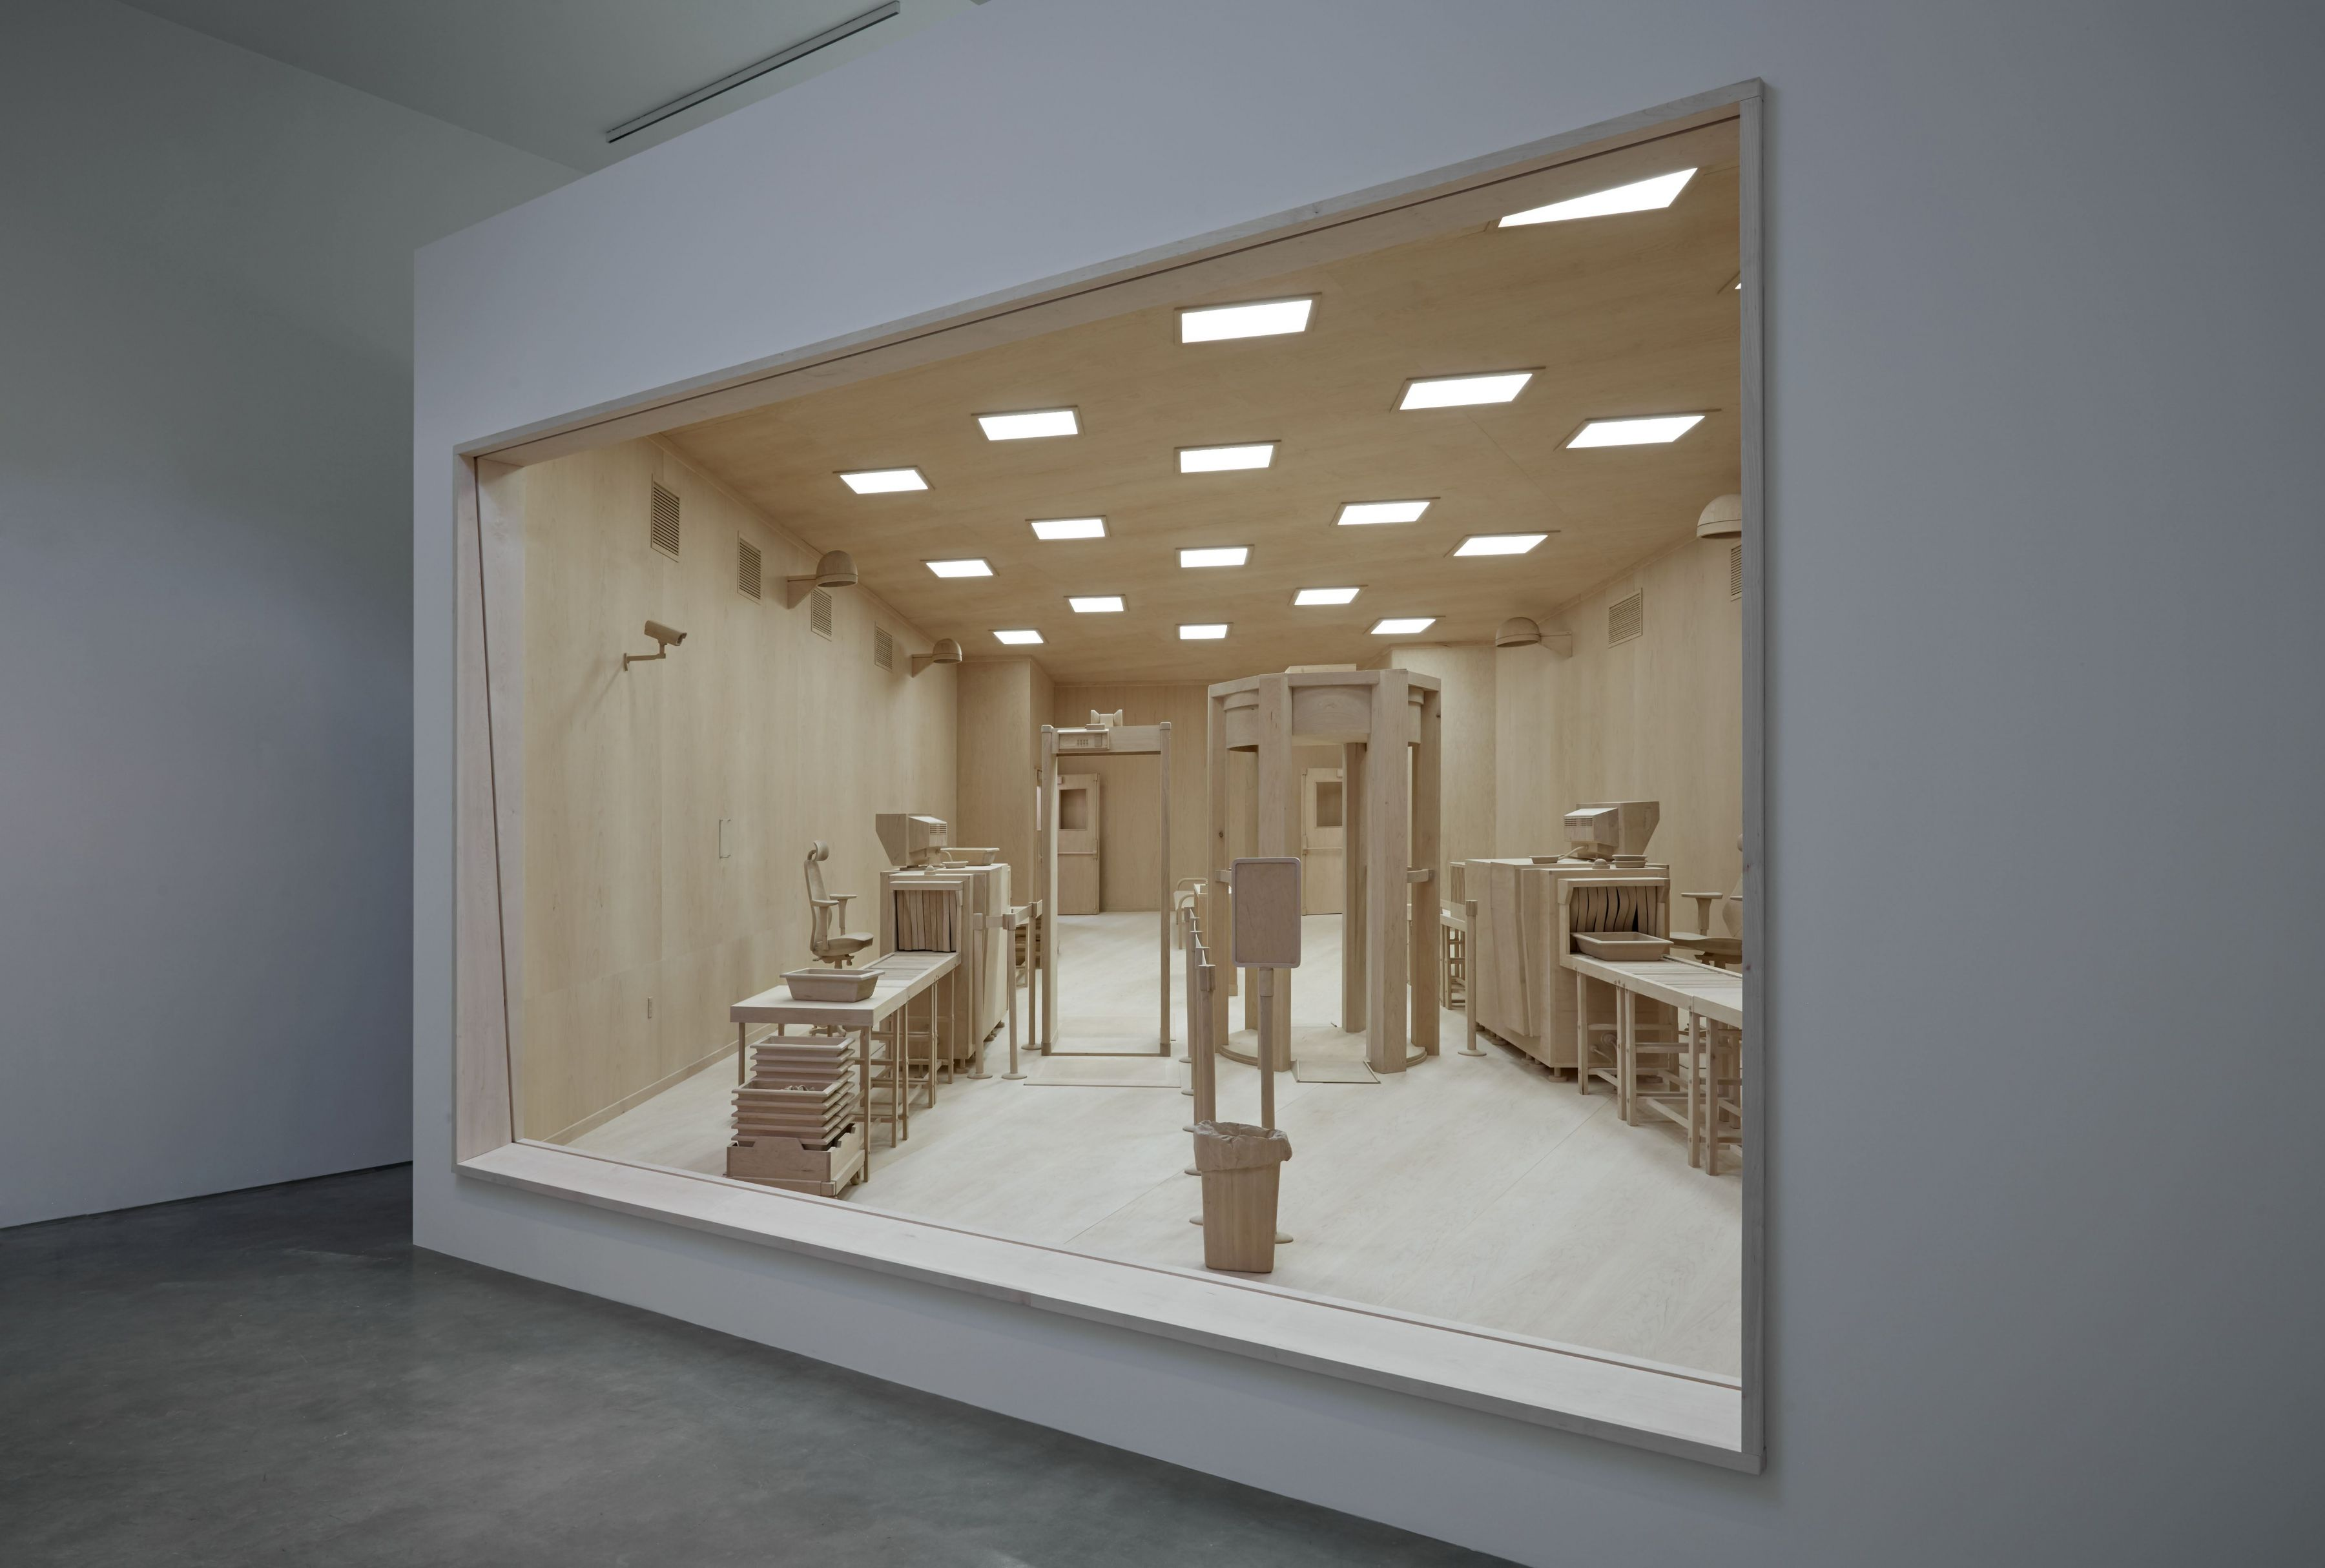 wood security checkpoint model by roxy paine